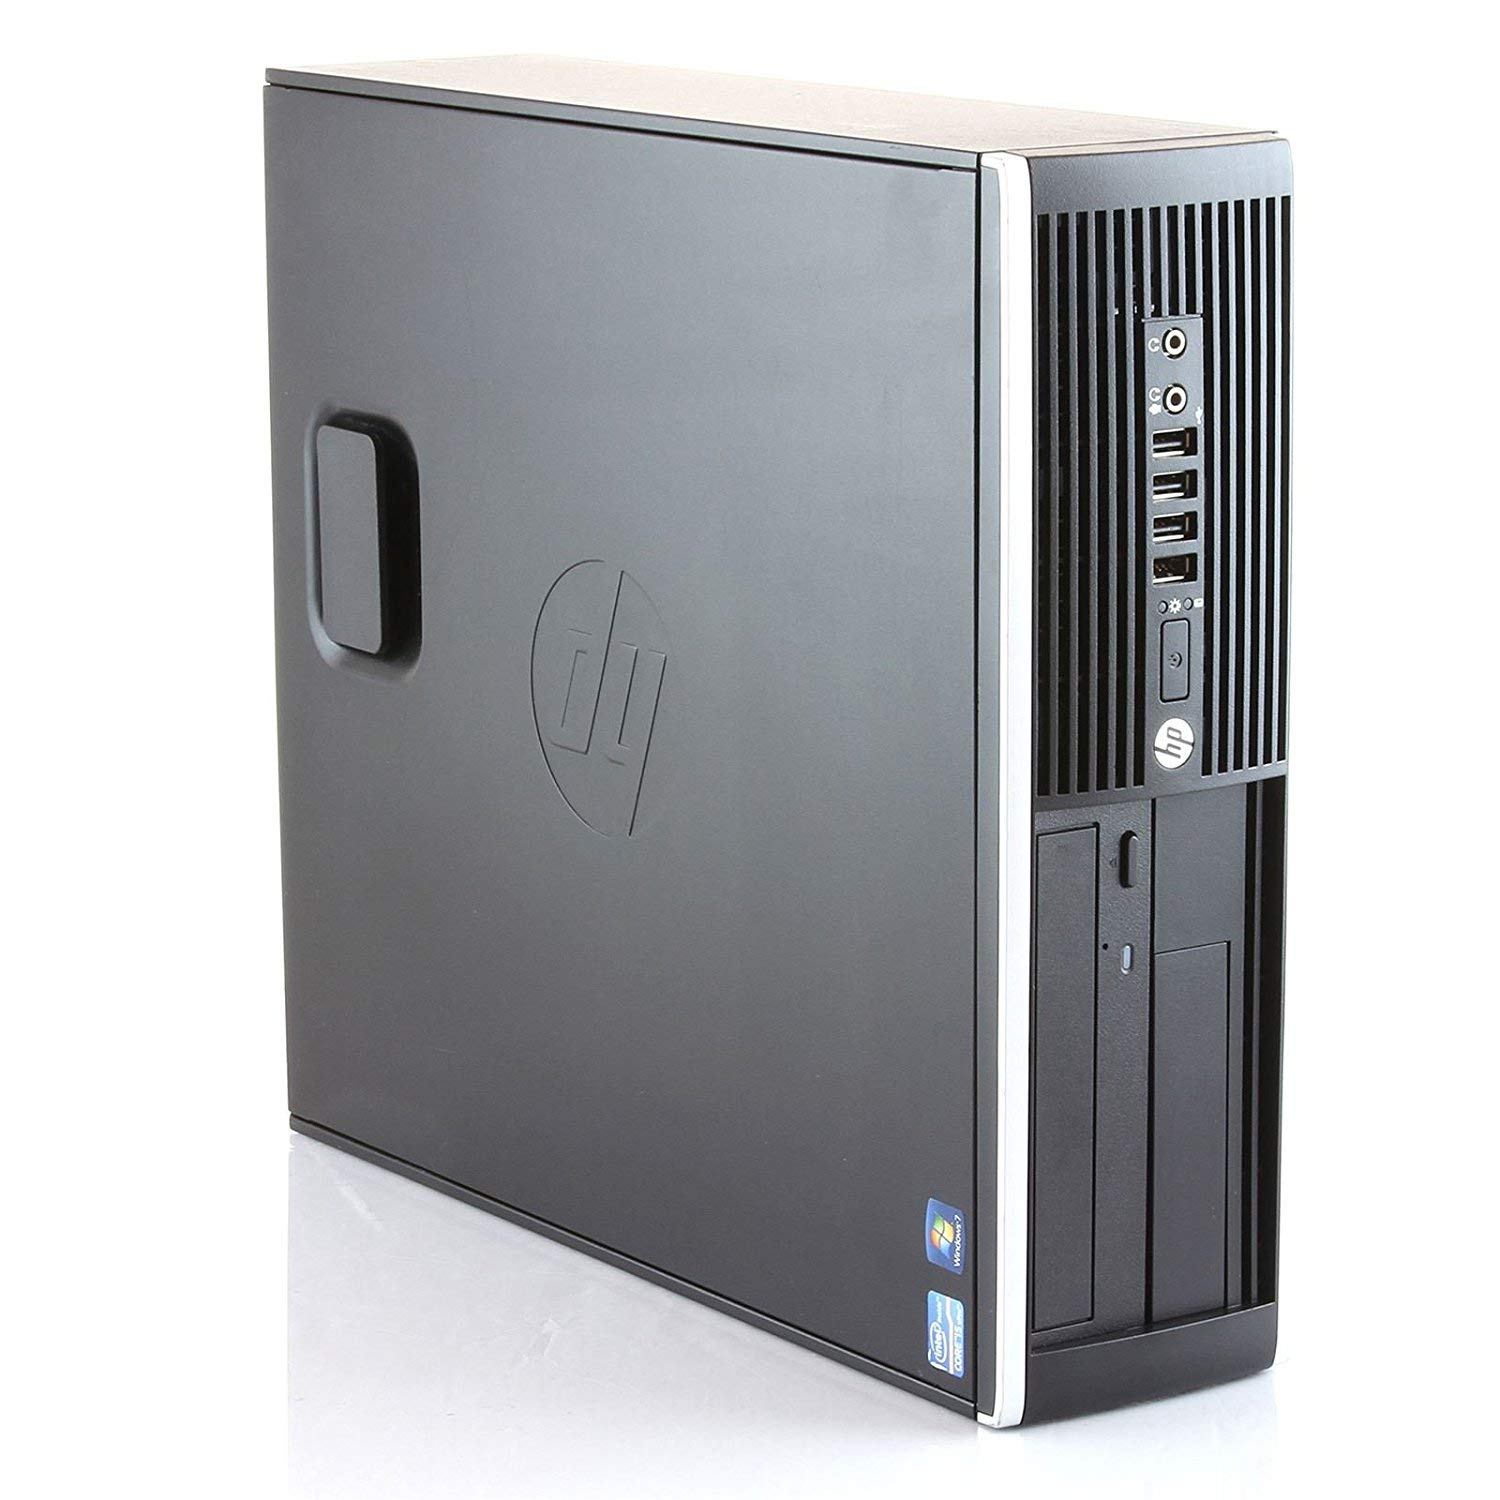 HP 8300-PC-Computer desktop (Intel <font><b>Core</b></font> <font><b>i7</b></font>-<font><b>3770</b></font>, 16 hard GB RAM, SSD 240 hard GB, DVD, Grafica 2 hard GB, WIFI, WIN 10 PRO image